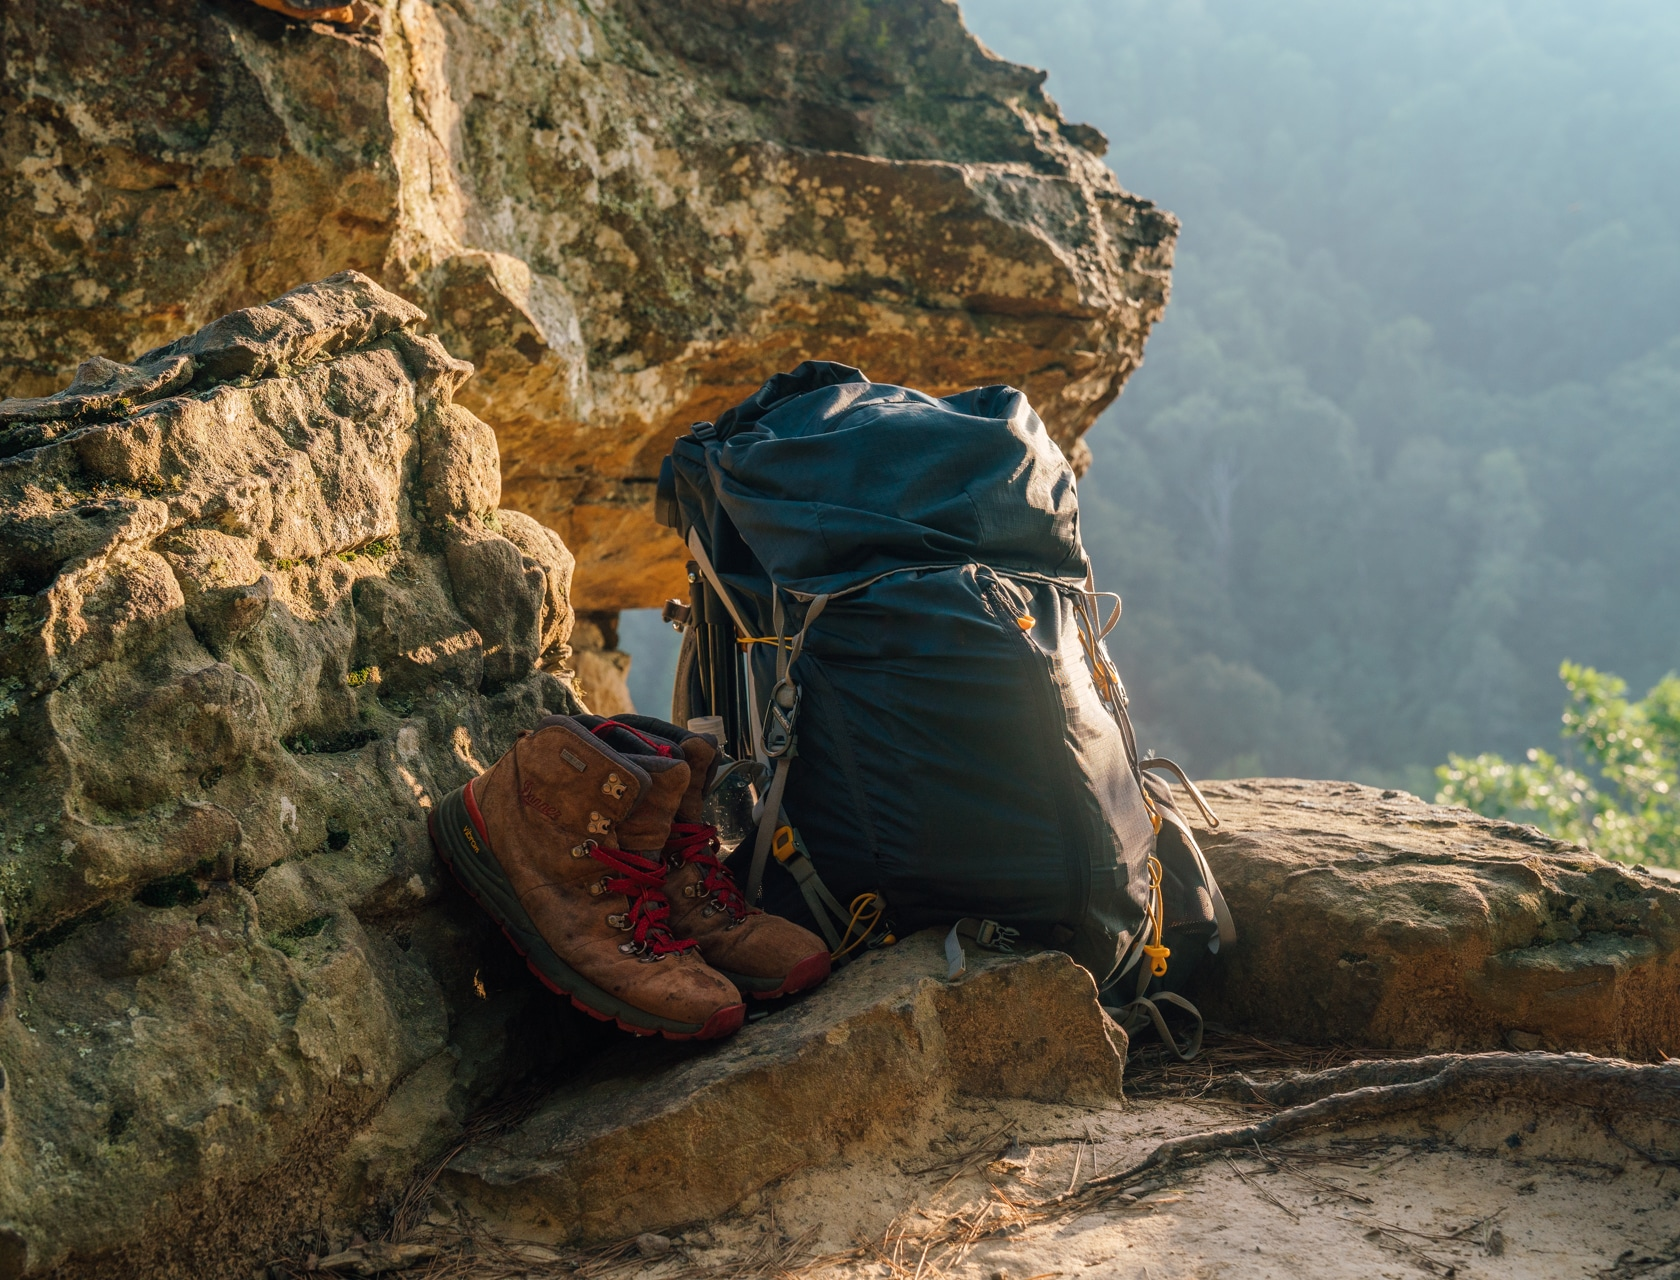 Shoes and backpack on cliffside in upper buffalo wilderness.